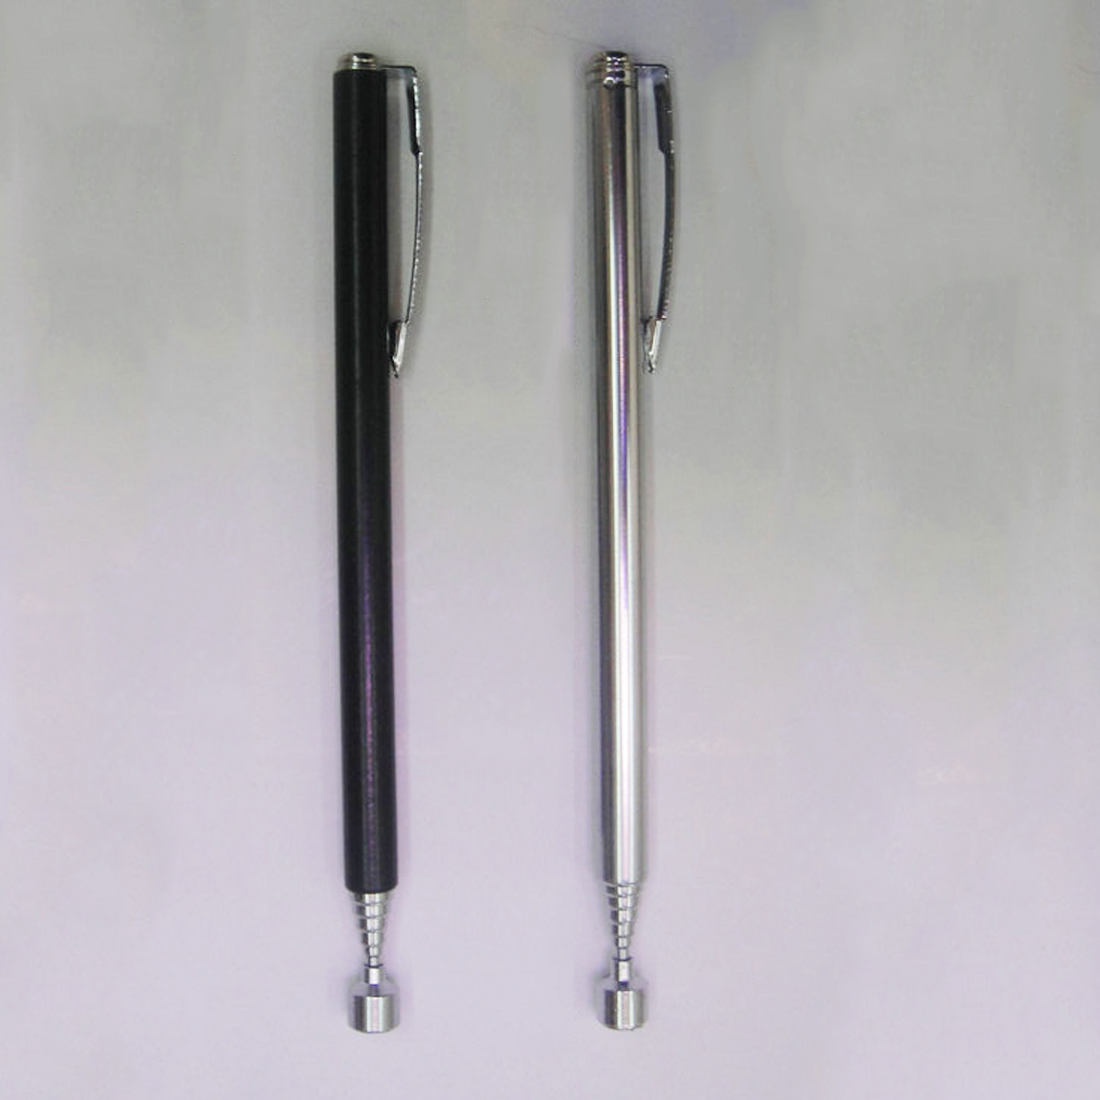 High Quality And Inexpensive Easy Bar Magnet Telescopic Portable Silver / Black 4.92~25.59inch (adjustable) Hand Tool